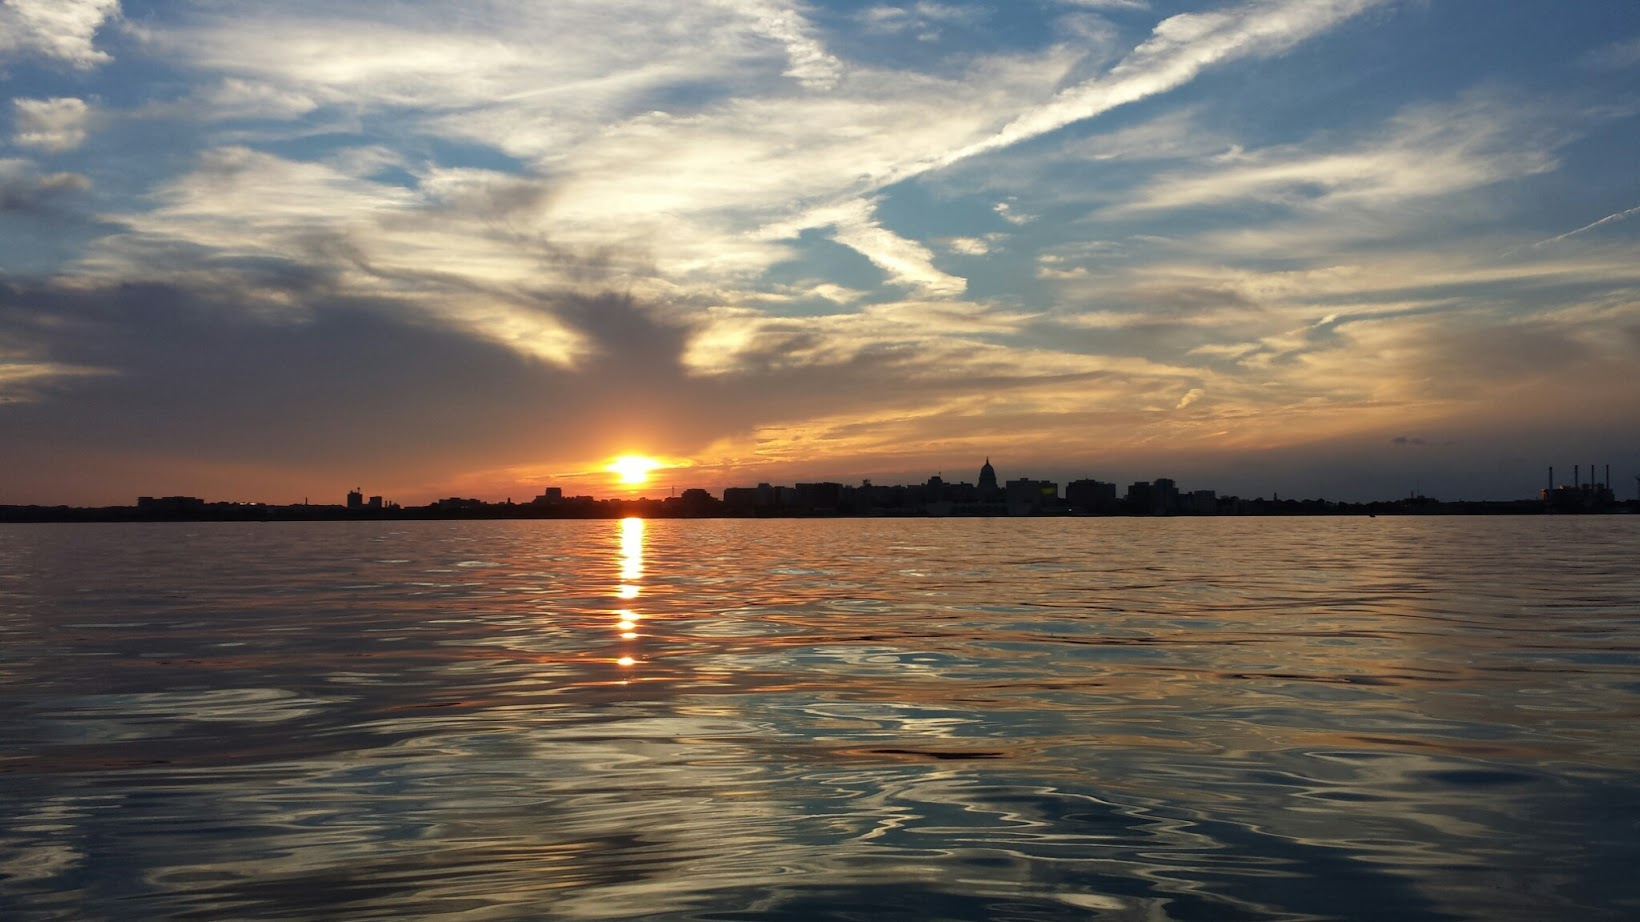 sunset over lake monona of downtown madison